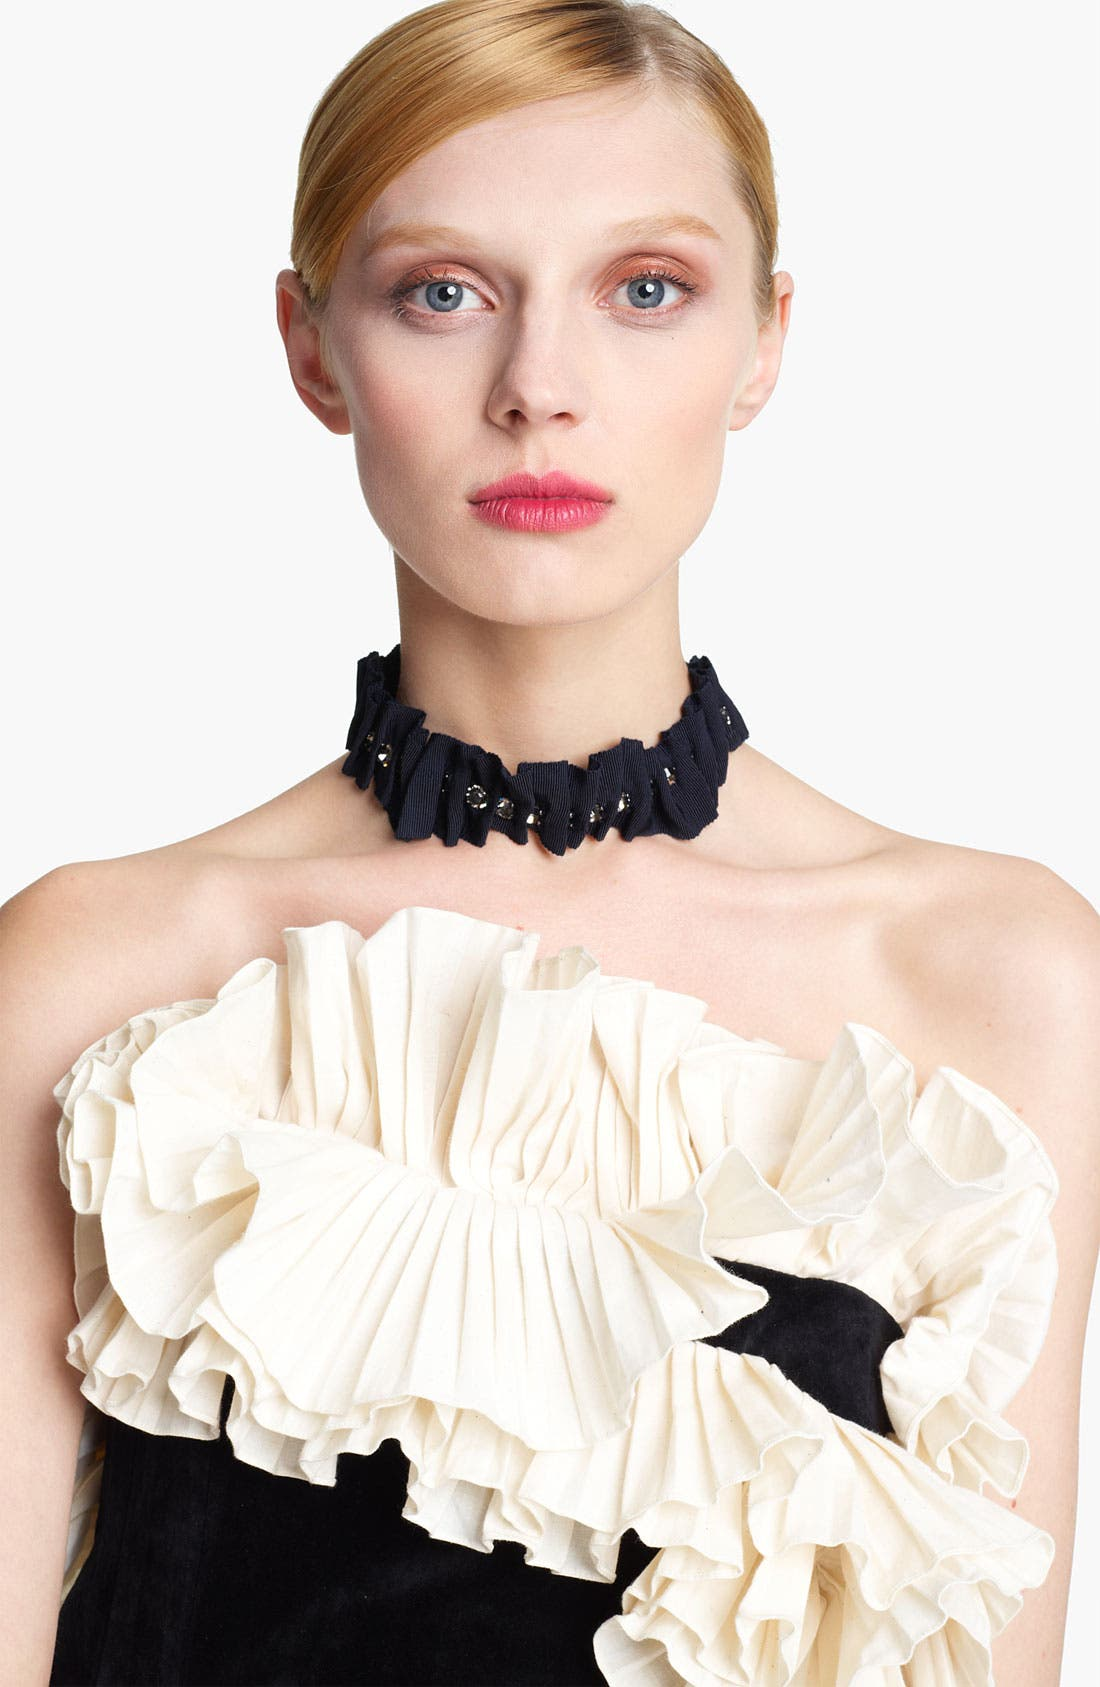 Alternate Image 1 Selected - Lanvin '10th Anniversary' Grosgrain Ribbon Necklace